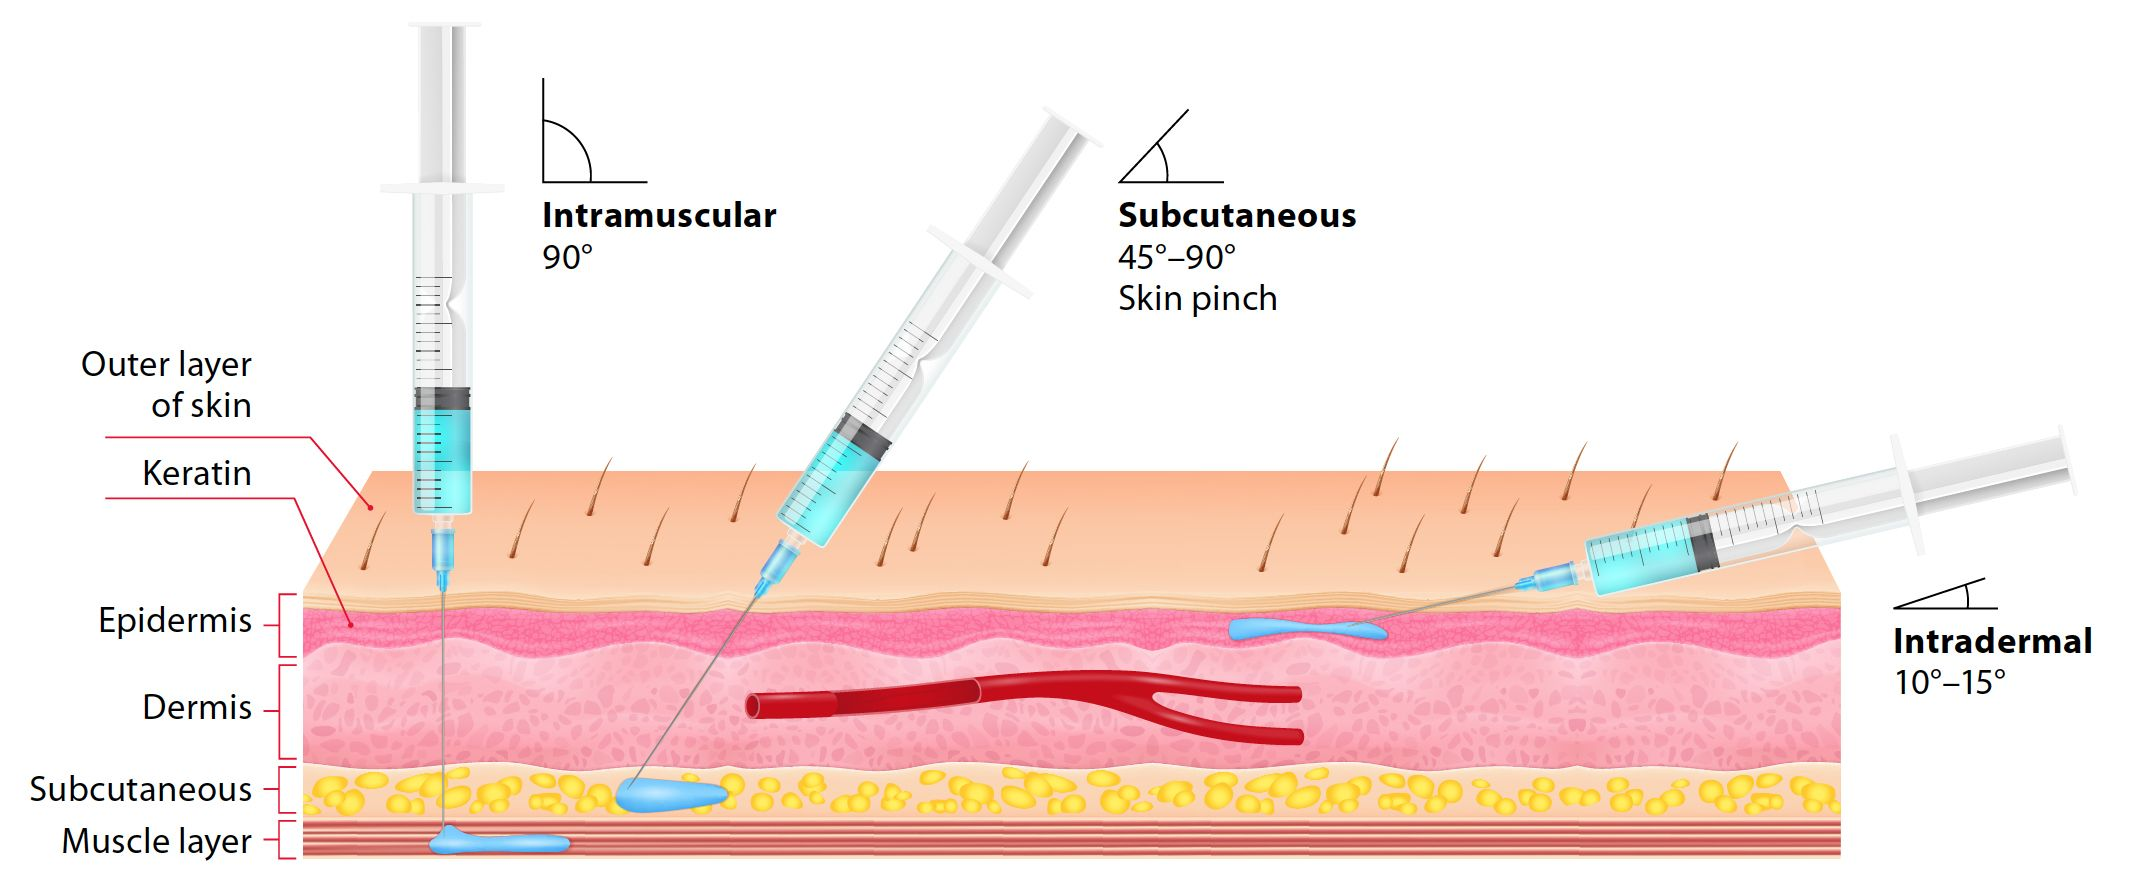 Types of needles and injections.